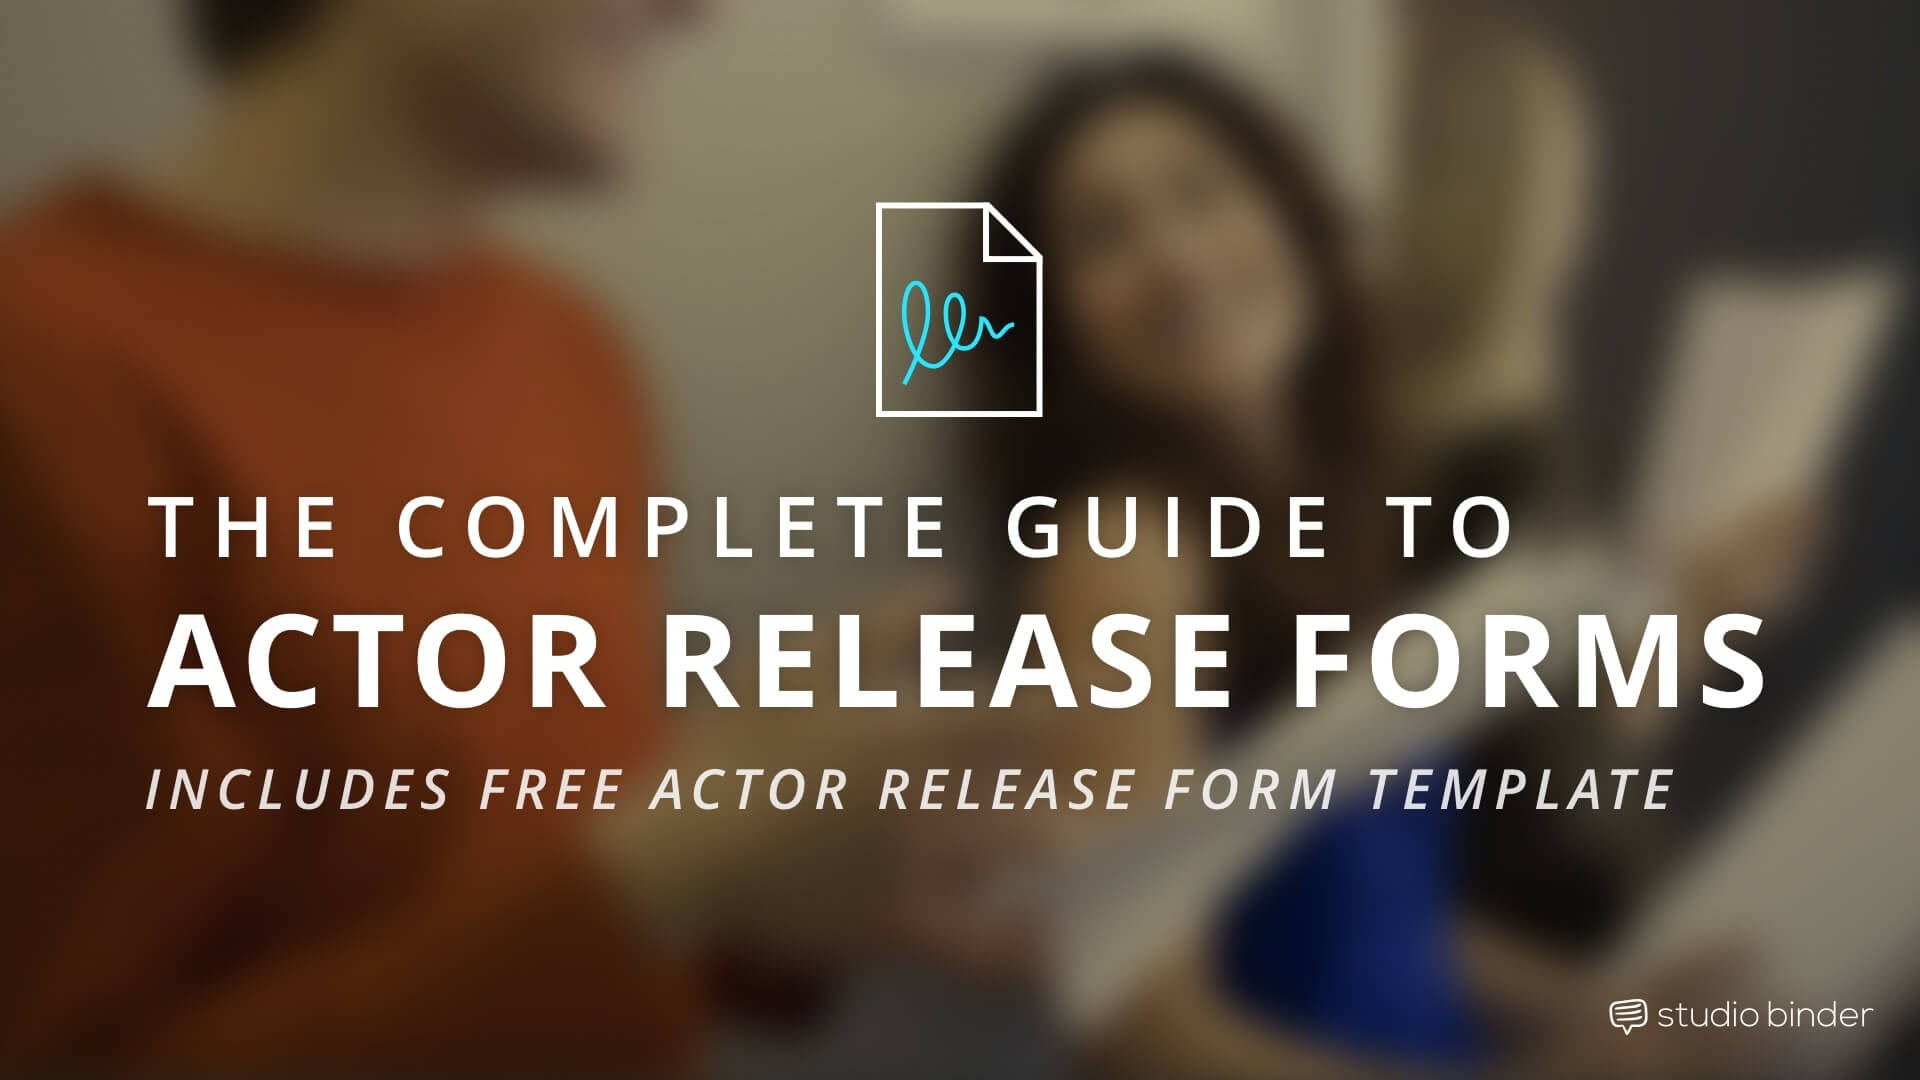 The Complete Guide to Actor Release Forms - StudioBinder Featured